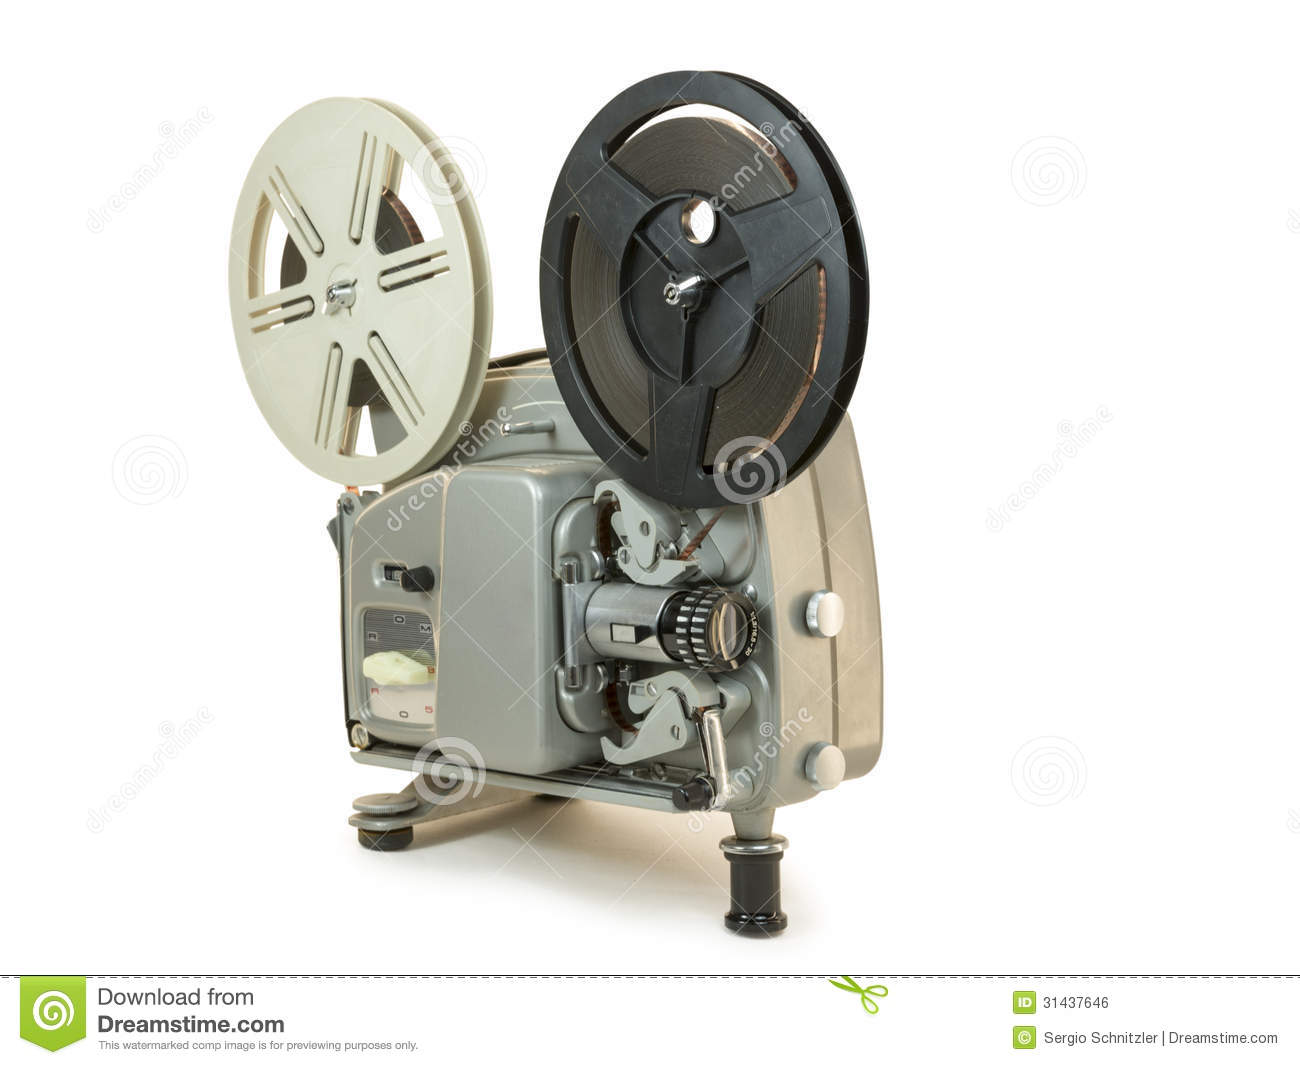 Super 8mm Film Projector 02 Royalty Free Stock Image.